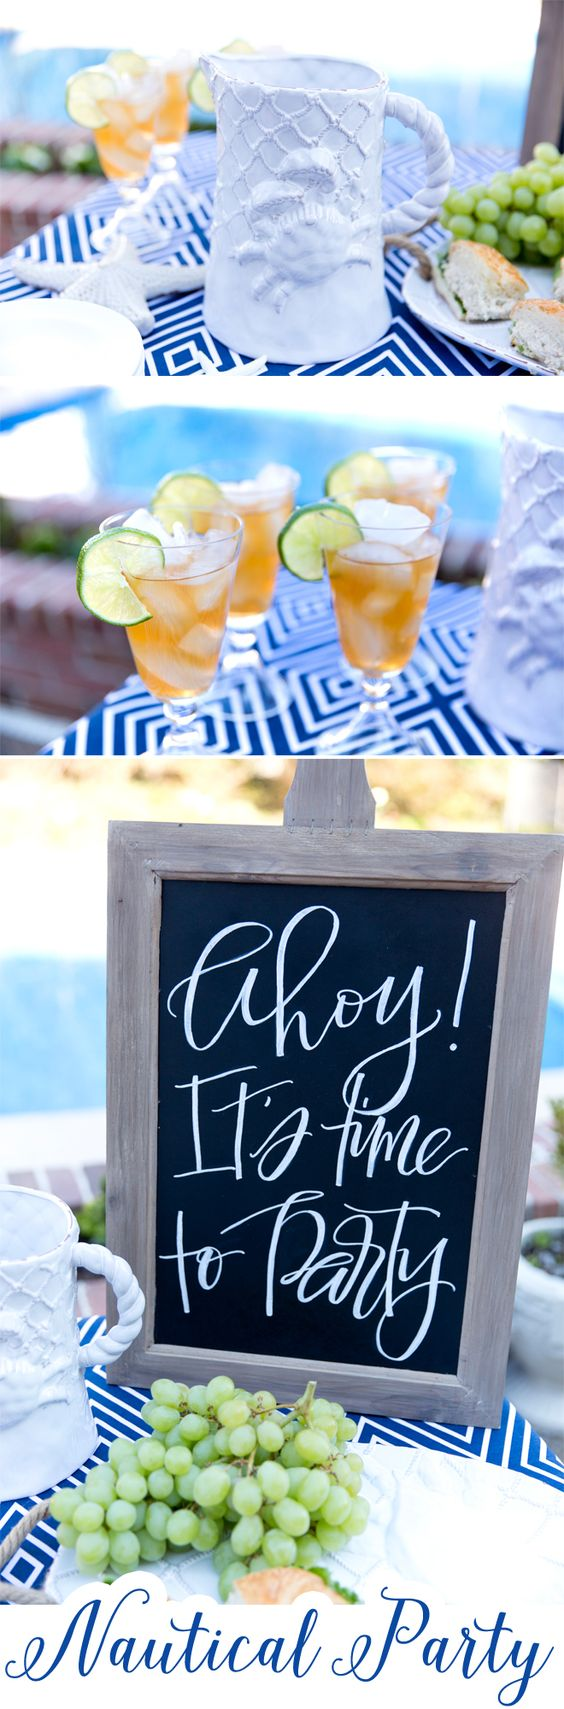 Throw a Nautical inspired party! Tips, ideas, and inspiration from Pizzazzerie.com